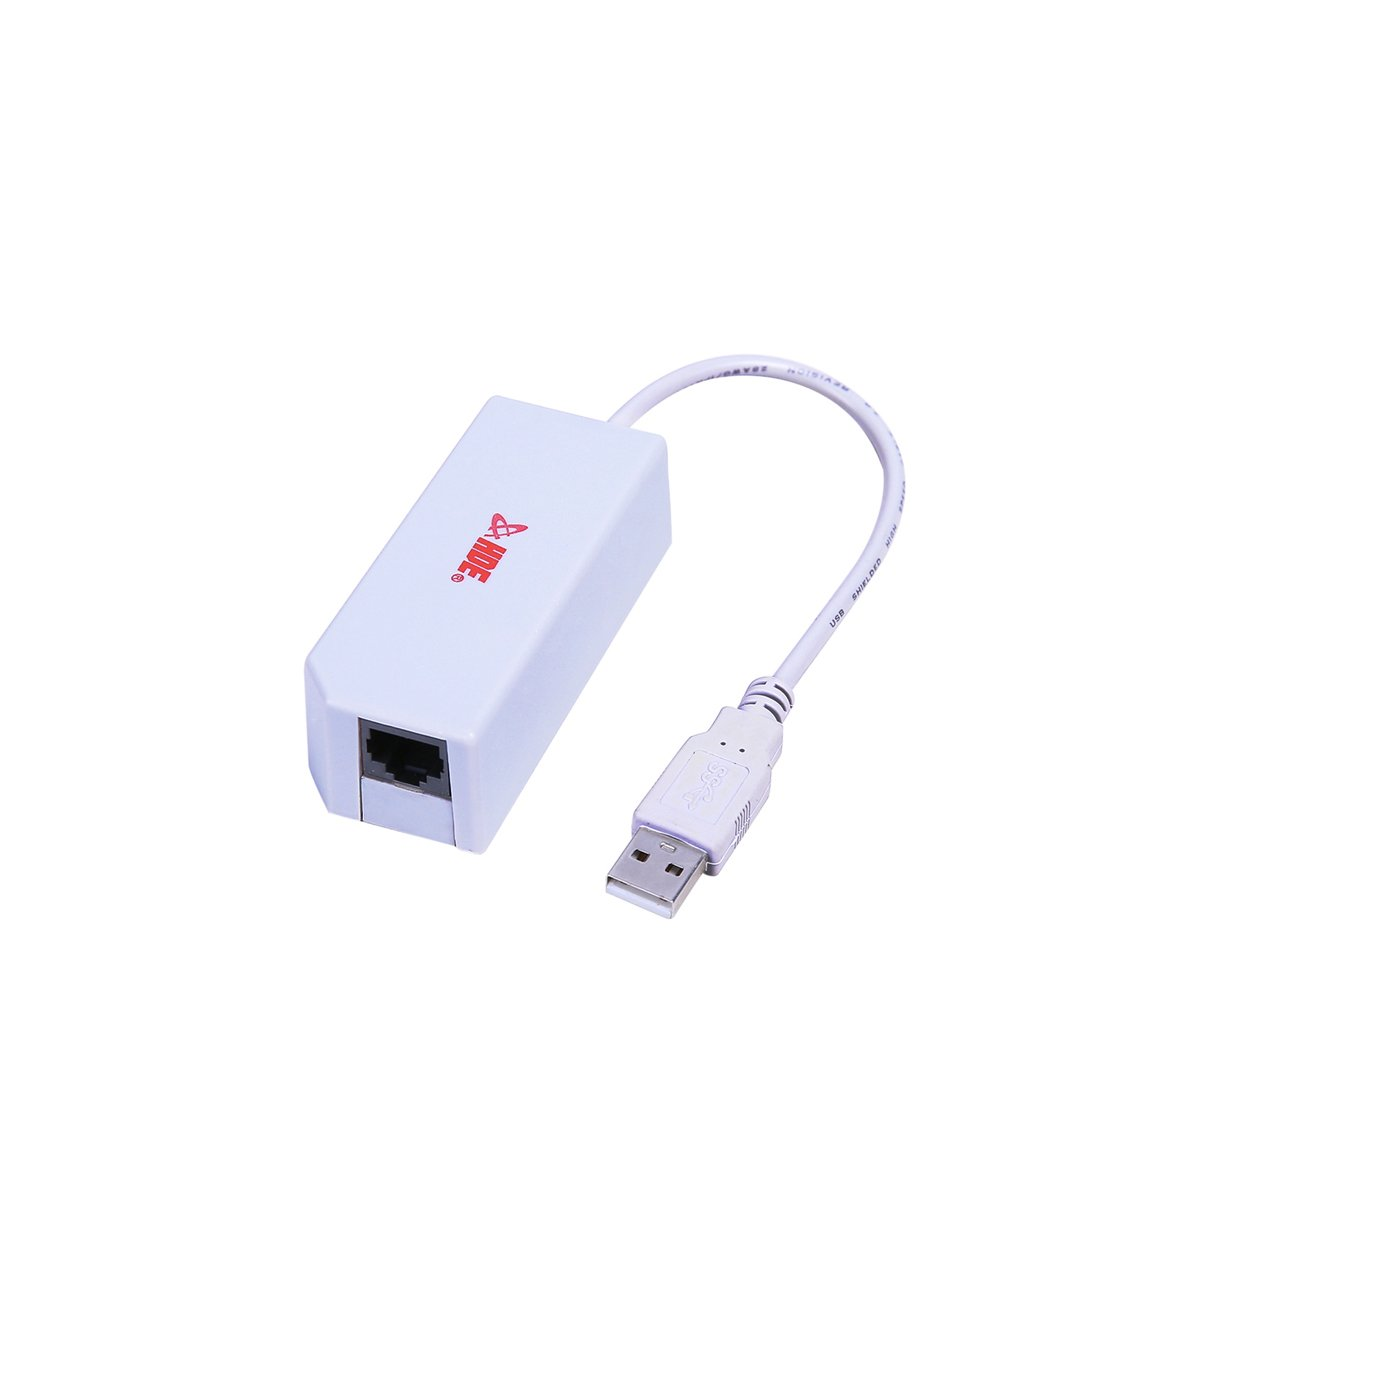 HDE Ethernet Adapter for Nintendo Switch / Wii U / Wii USB to LAN Network Adapter [Wired Connection] Converter by HDE